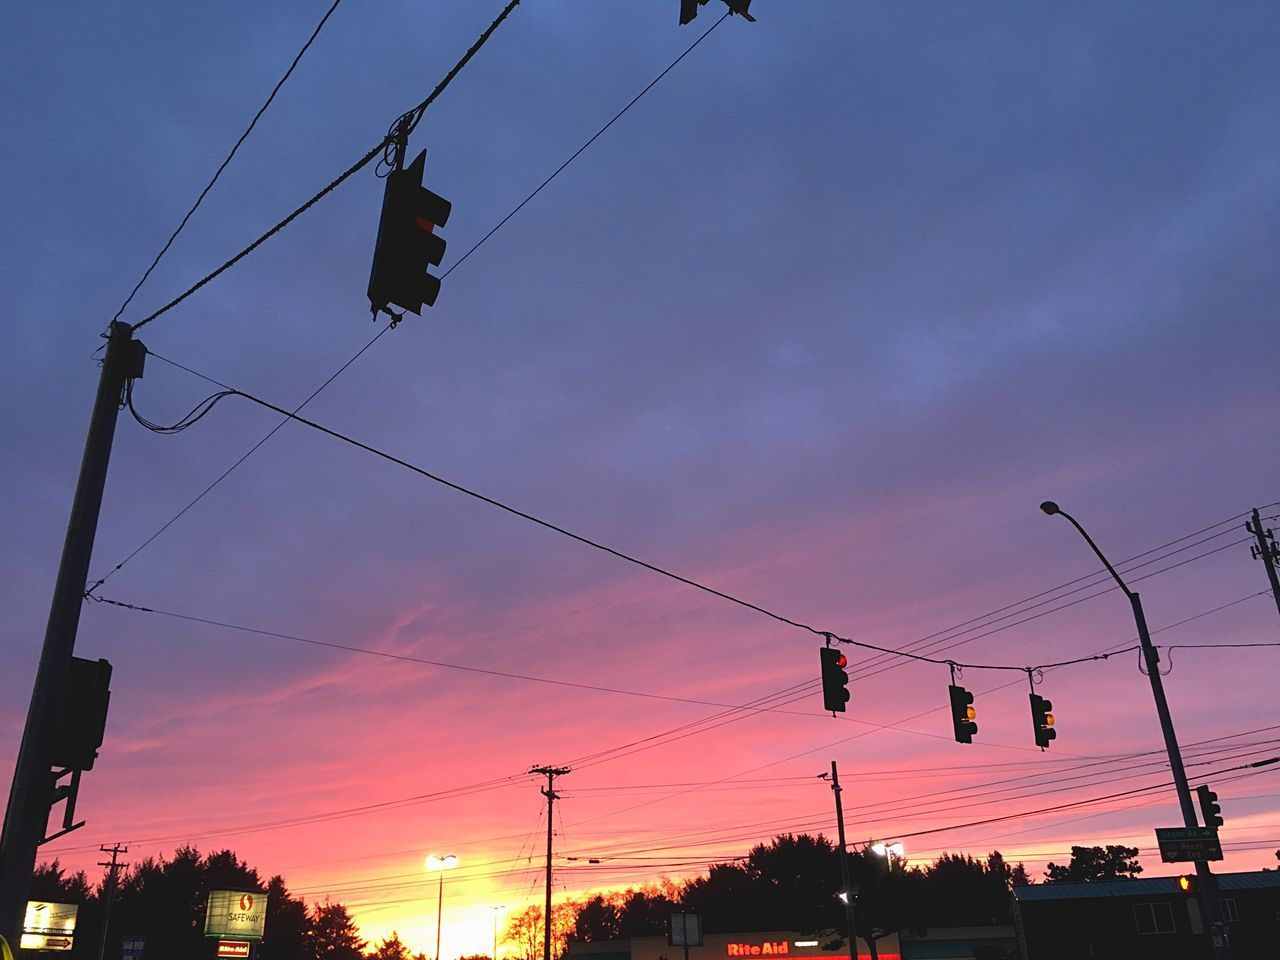 sunset, cable, low angle view, silhouette, transportation, sky, cloud - sky, hanging, outdoors, nature, scenics, beauty in nature, no people, electricity pylon, overhead cable car, day